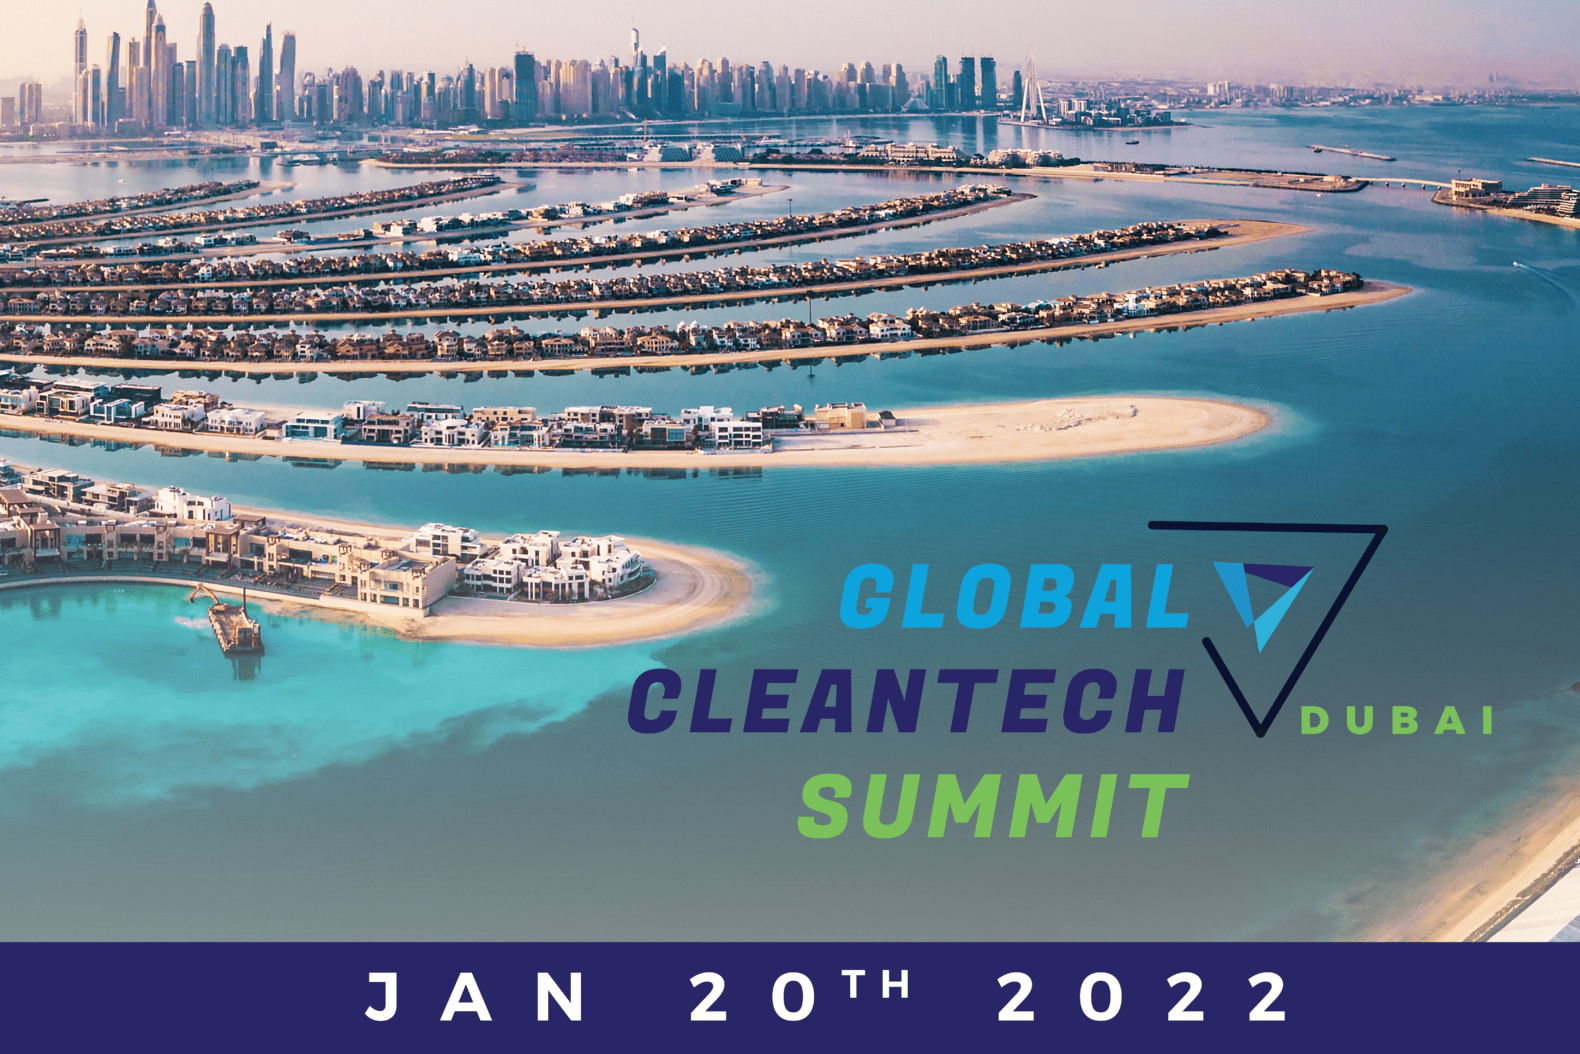 GLOBAL CLEANTECH SUMMIT